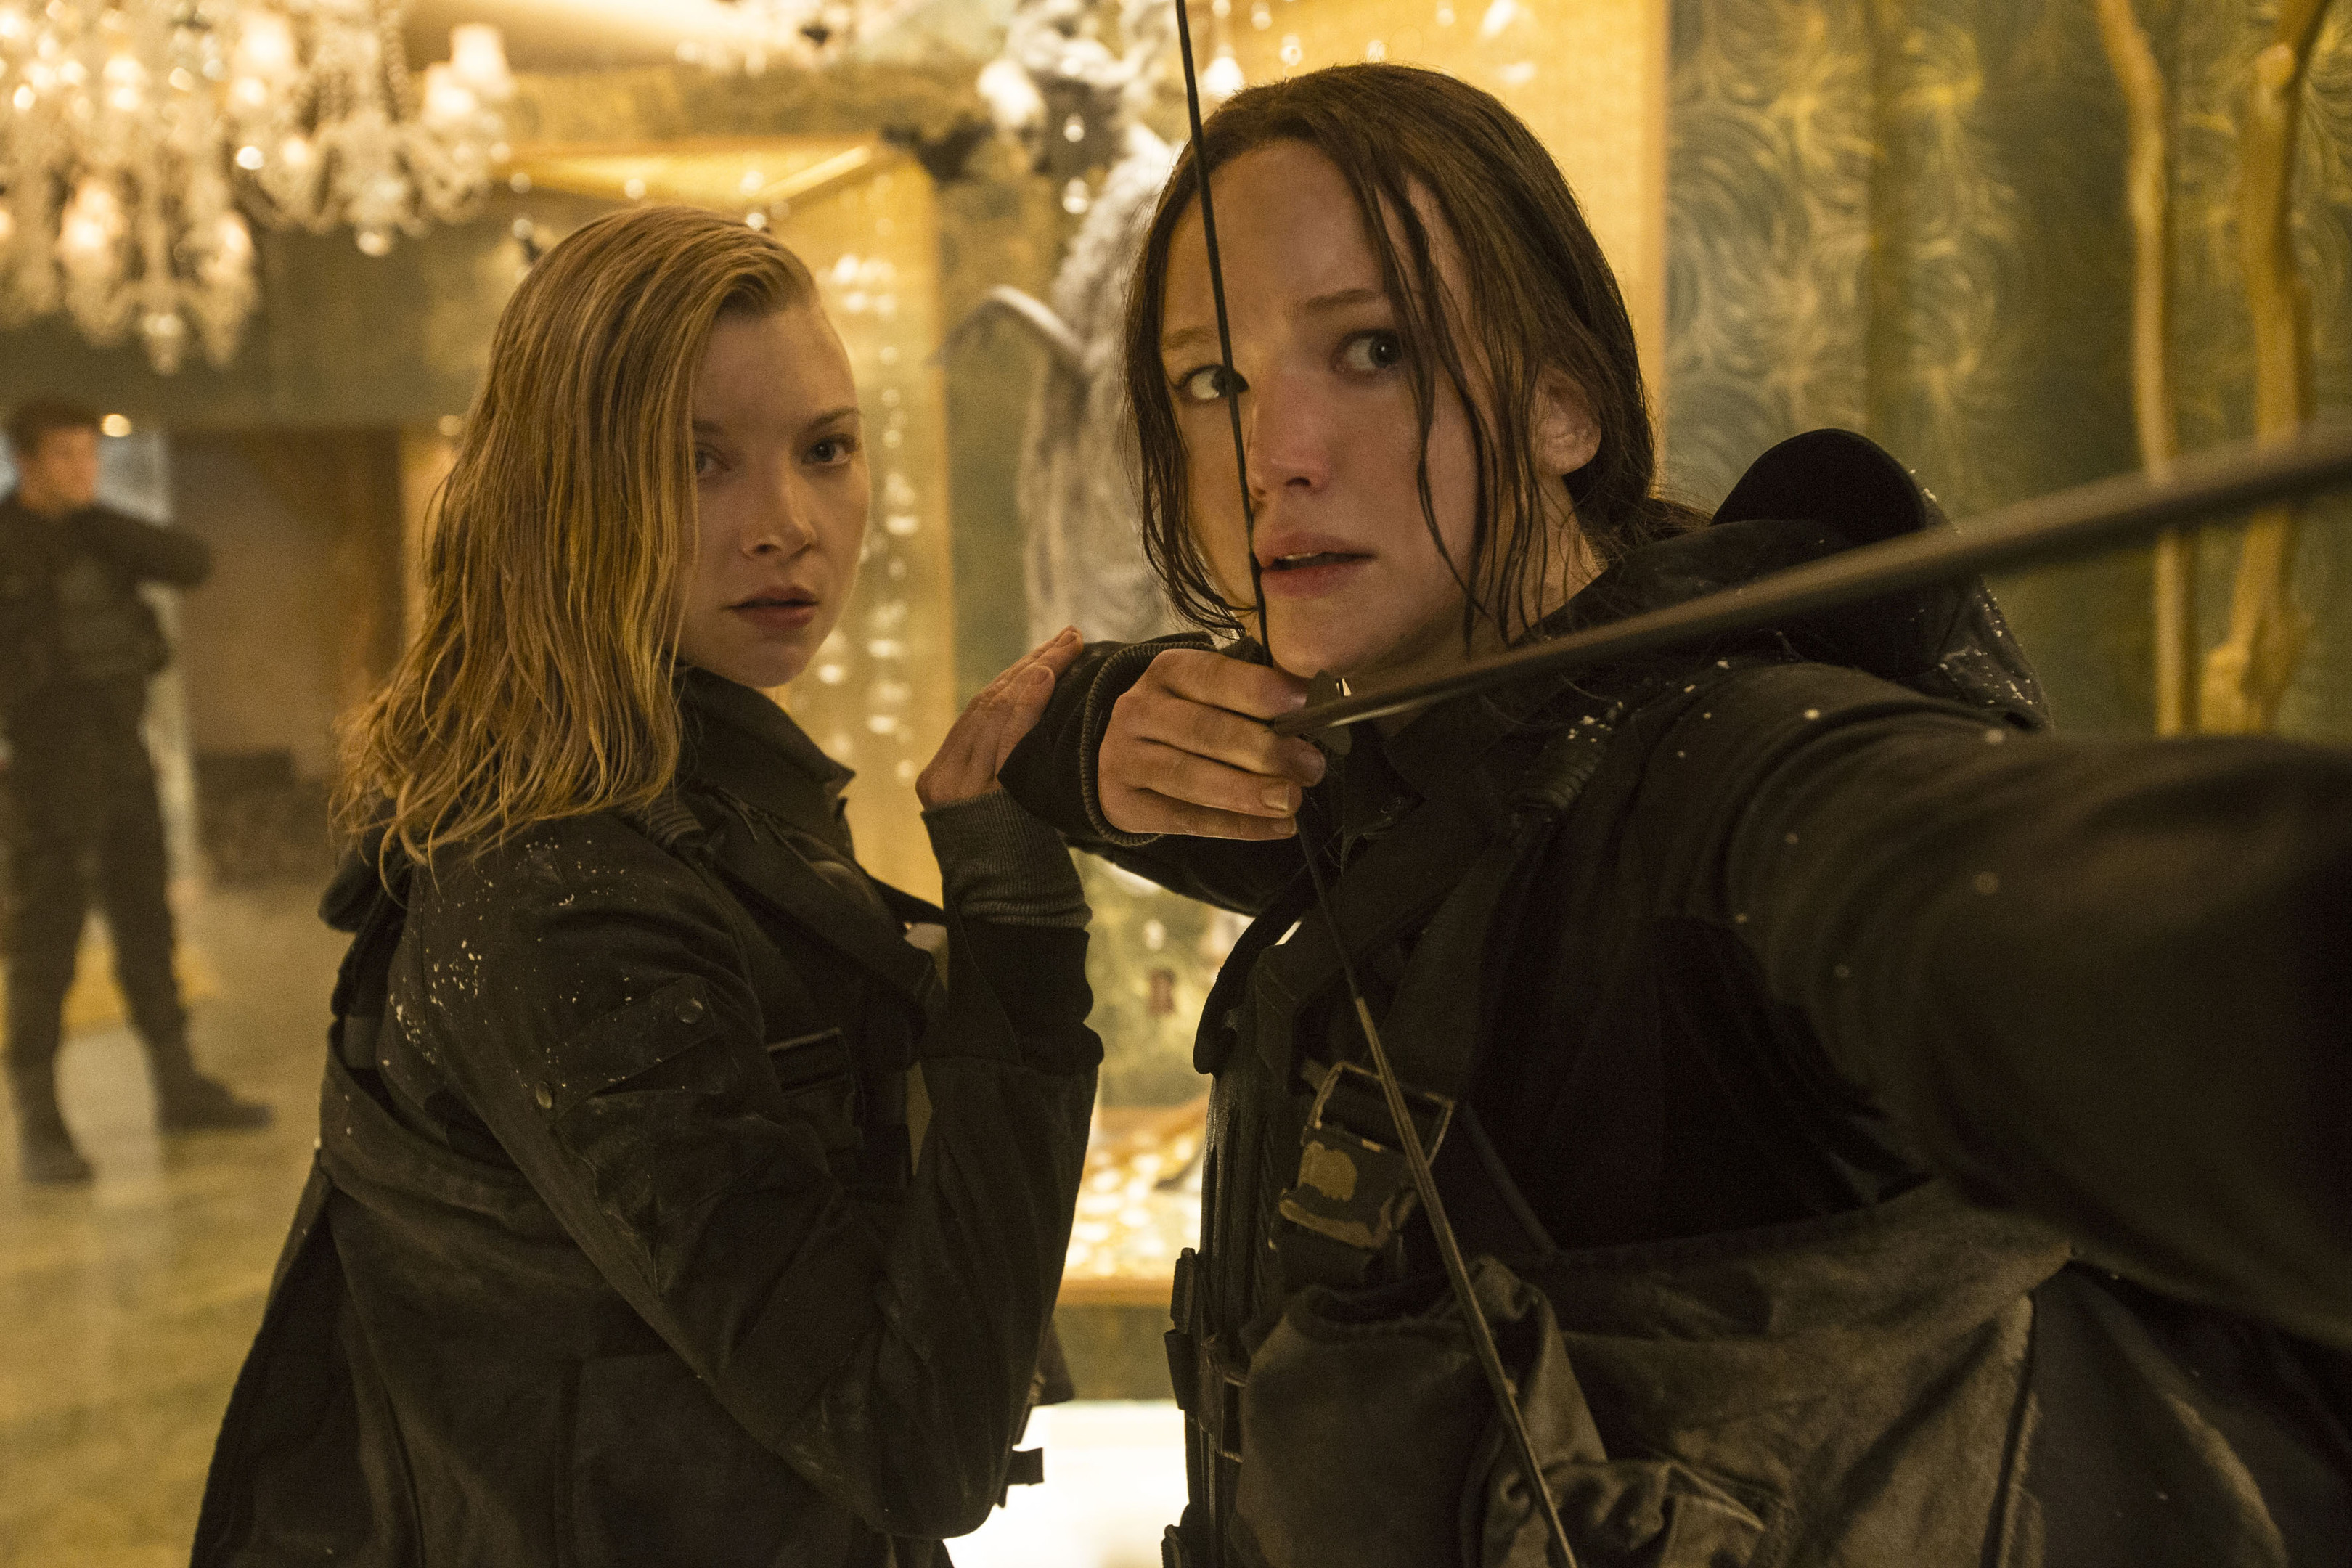 fight to the end: Natalie Dormer, as Cresida, and Jennifer Lawrence, as Katniss Everdeen, in a scene from The Hunger Games: Mockingjay – Part 2.